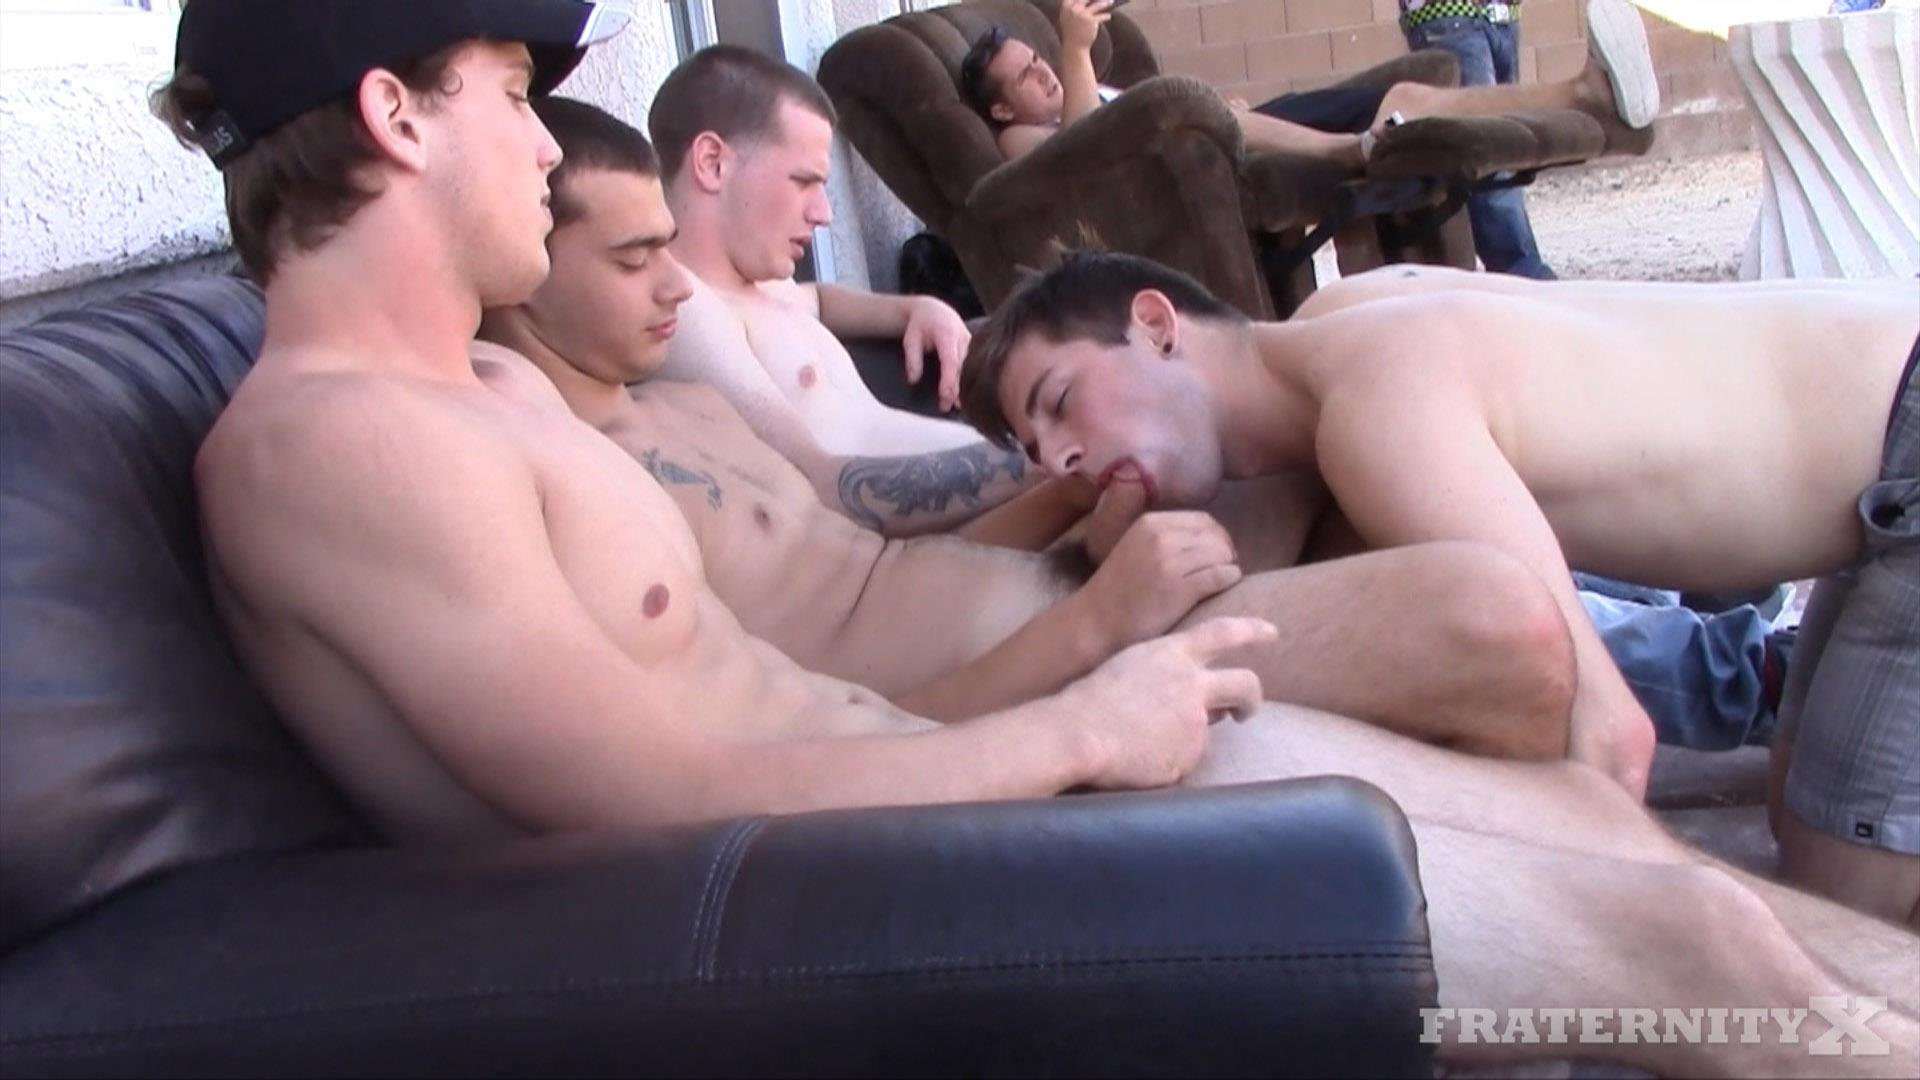 Fraternity-X-Frenchy-Naked-Frat-Guys-Barebacking-Outside-Big-Dicks-Amateur-Gay-Porn-04 Fraternity Boys Fucking Bareback Outside On The Frat Patio